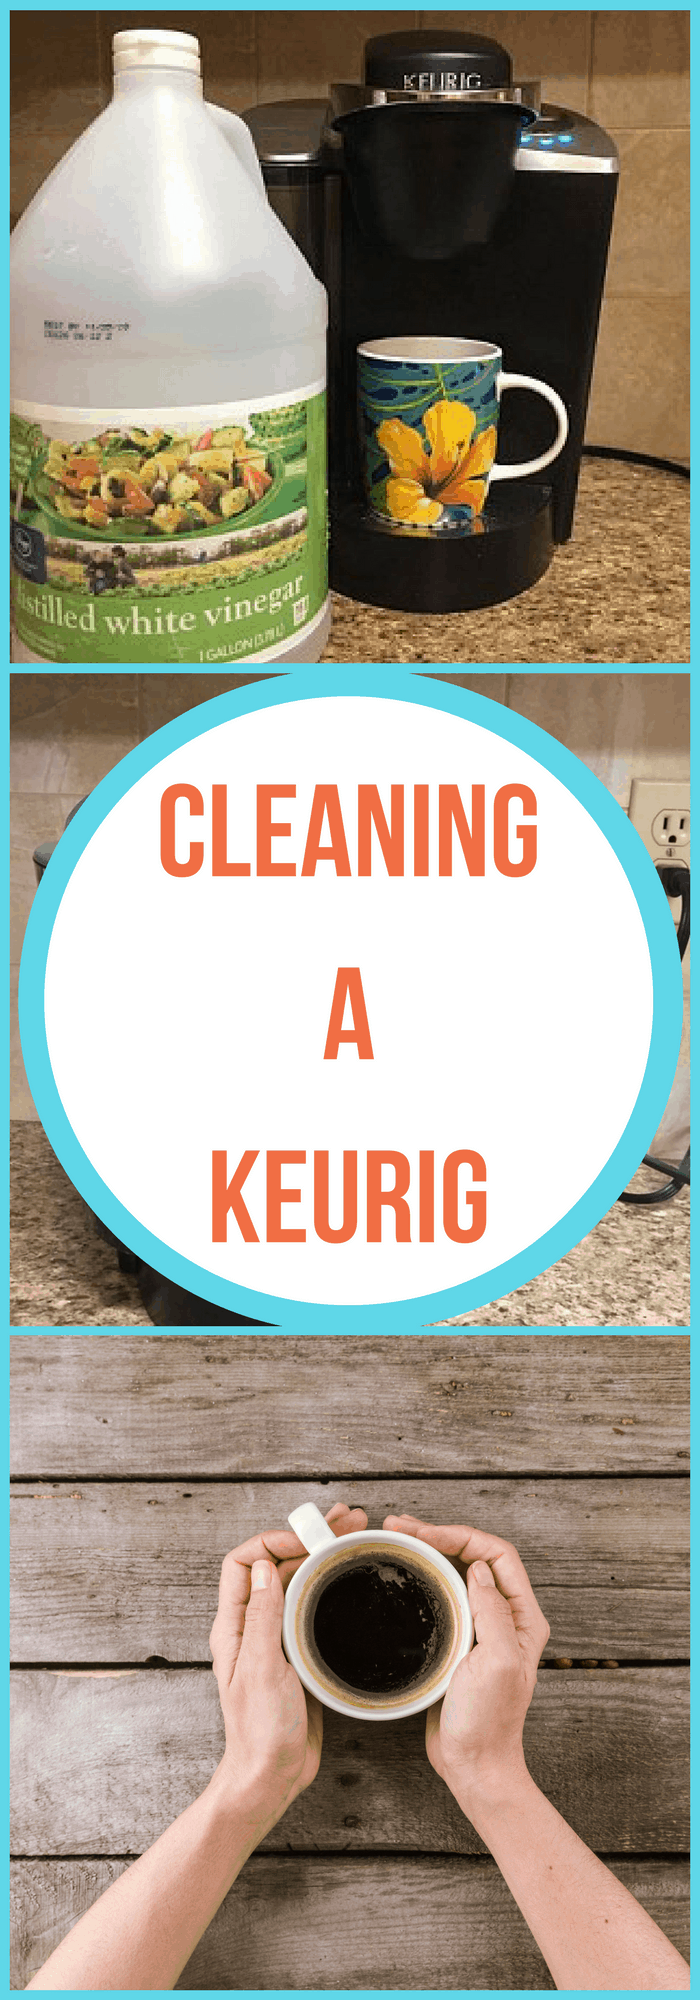 Cleaning--Cleaning a Keurig--The Organized Mom